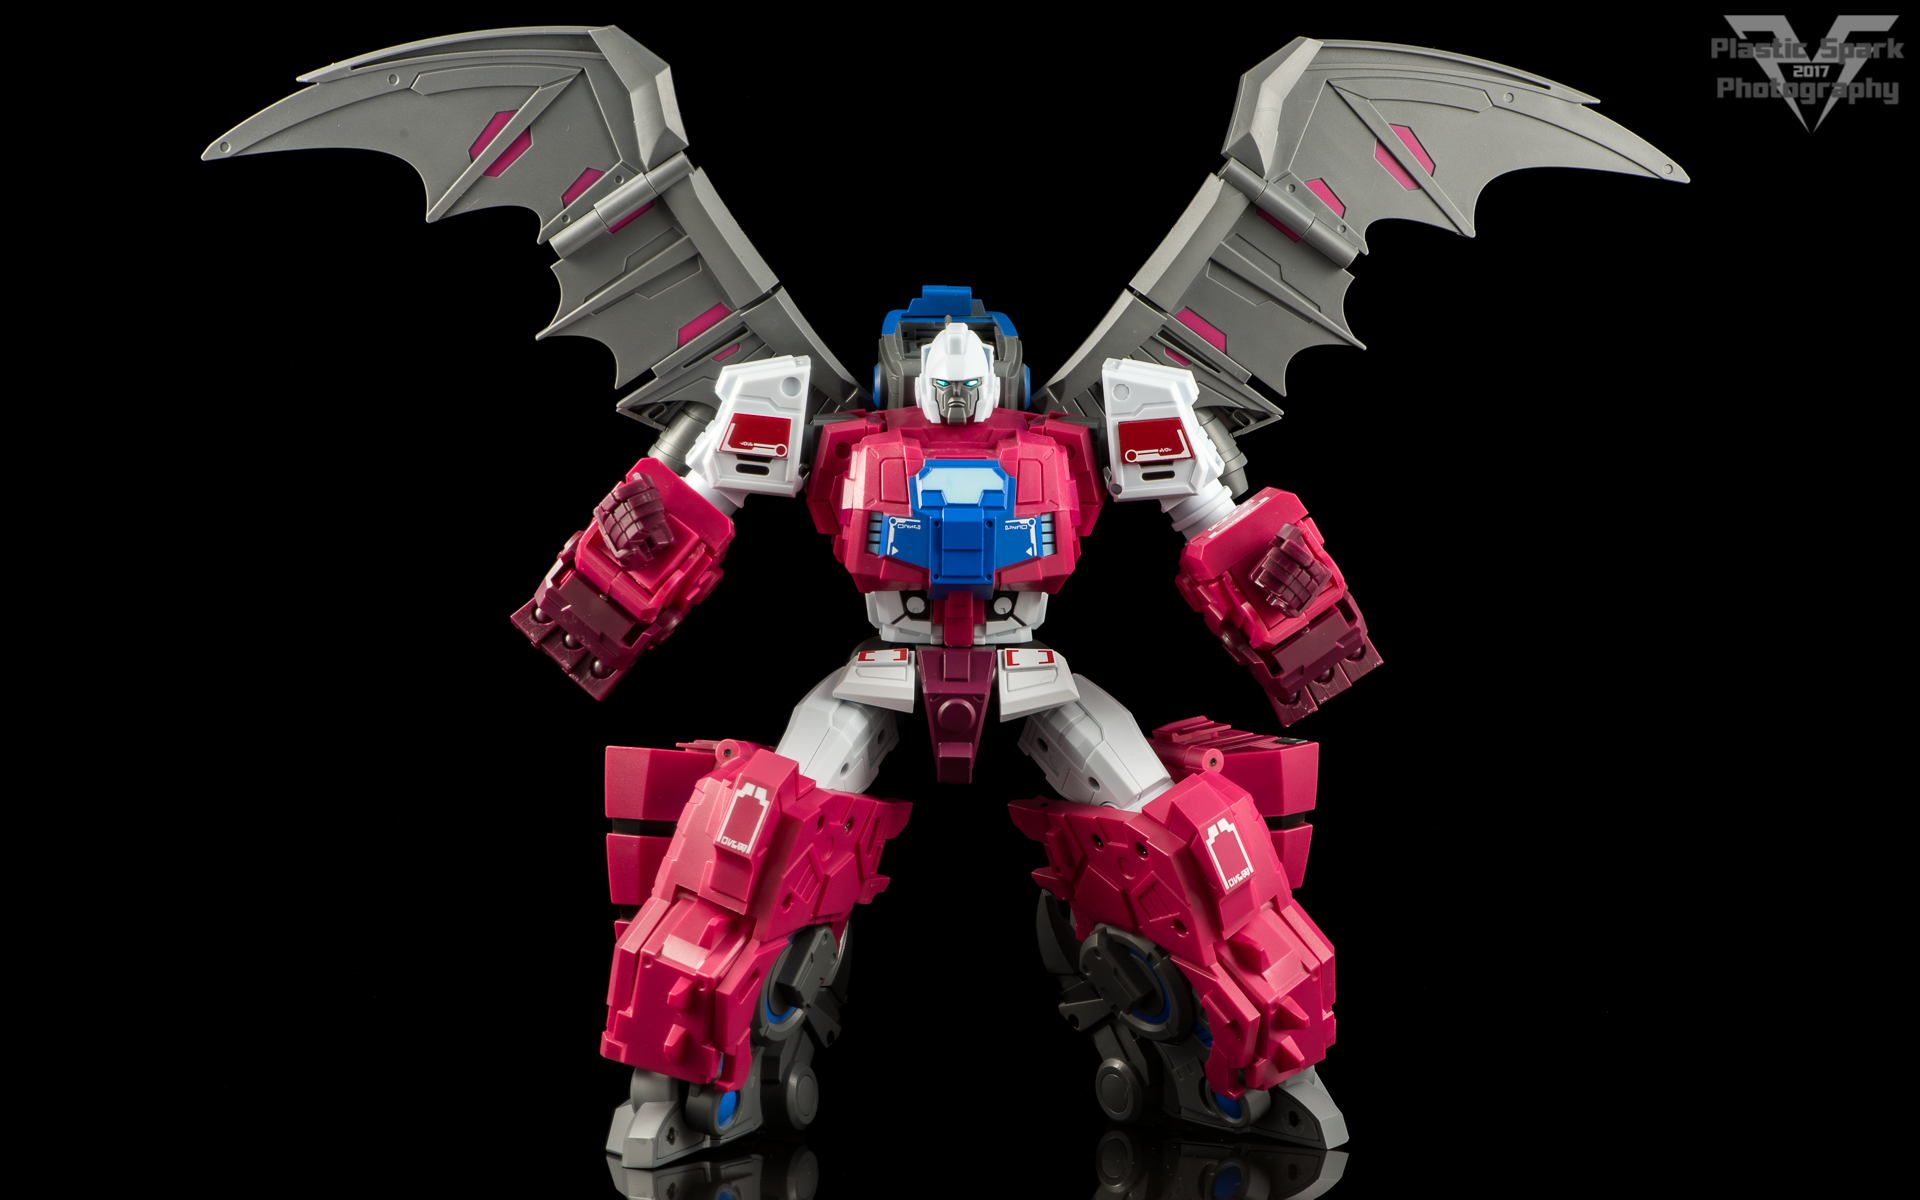 Fans-Hobby-MB-05-Flypro-(32-of-42).png